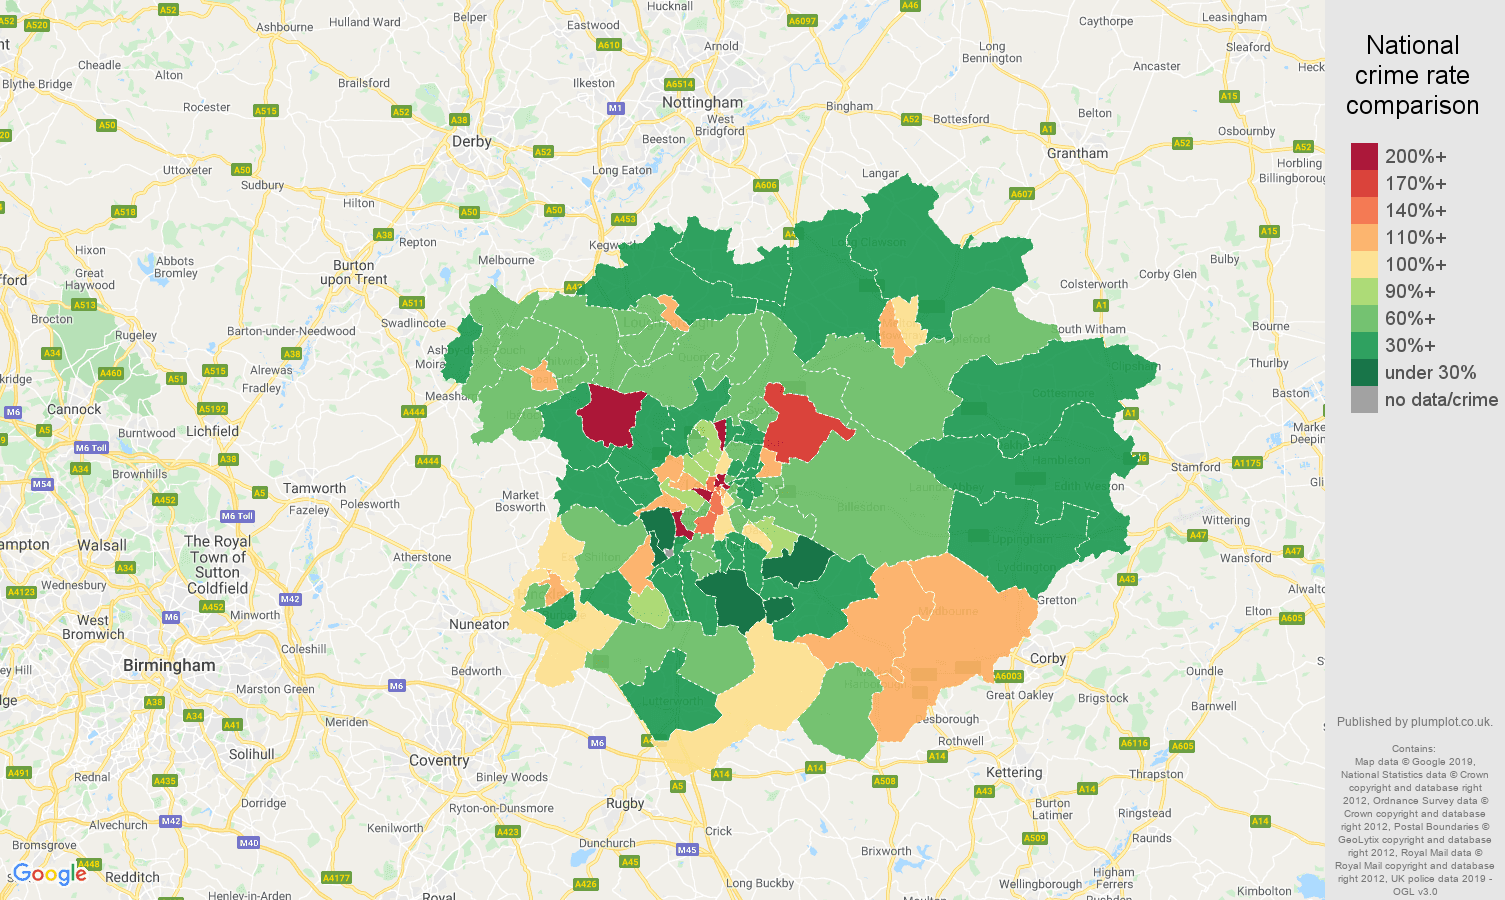 Leicester other theft crime rate comparison map